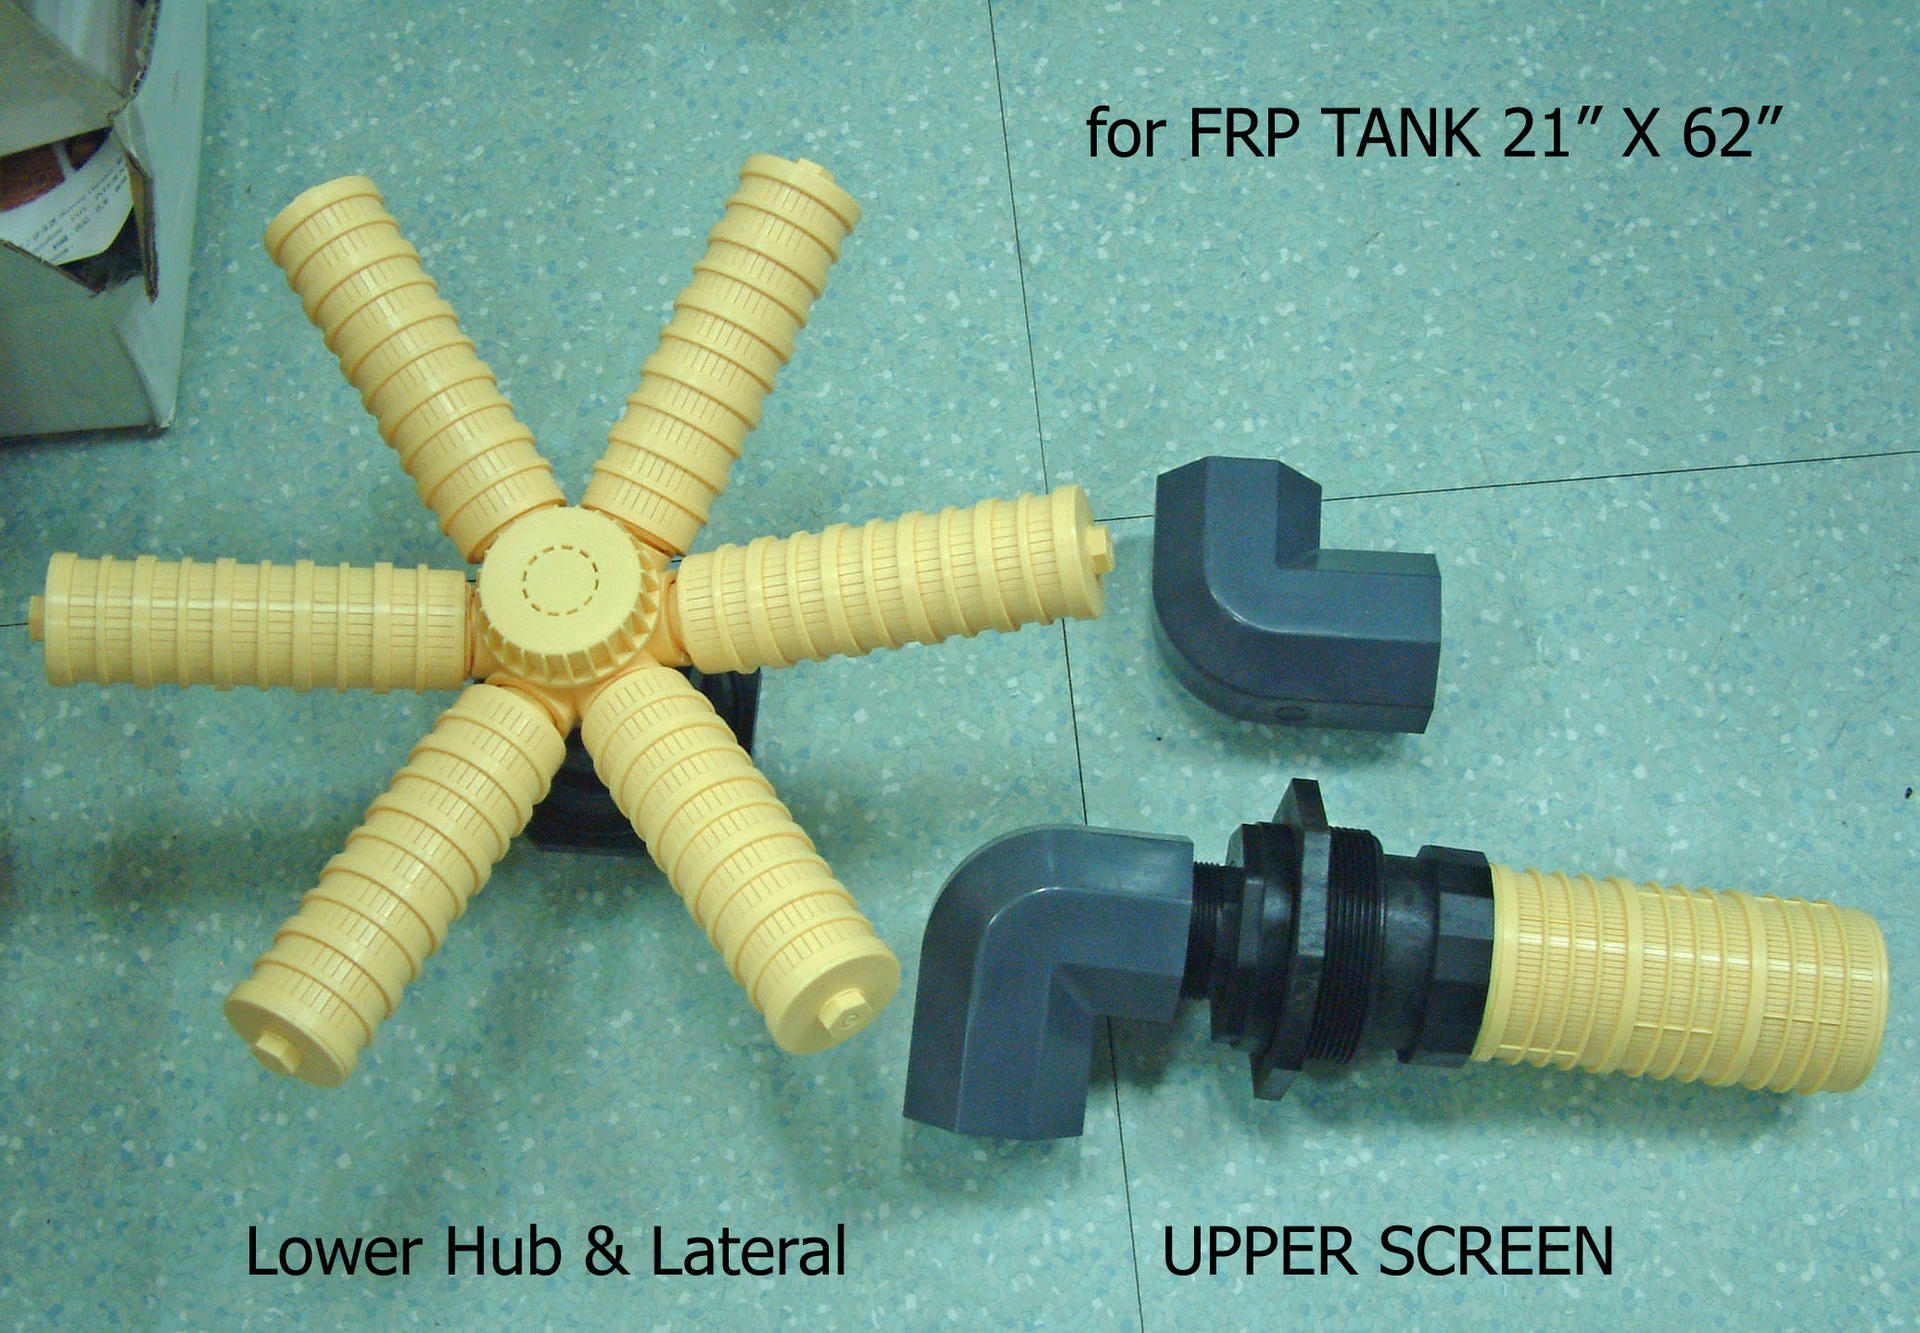 Ocpuritech Brand important element part, connect with frp tank for working durable water distributor Different colors are available factory